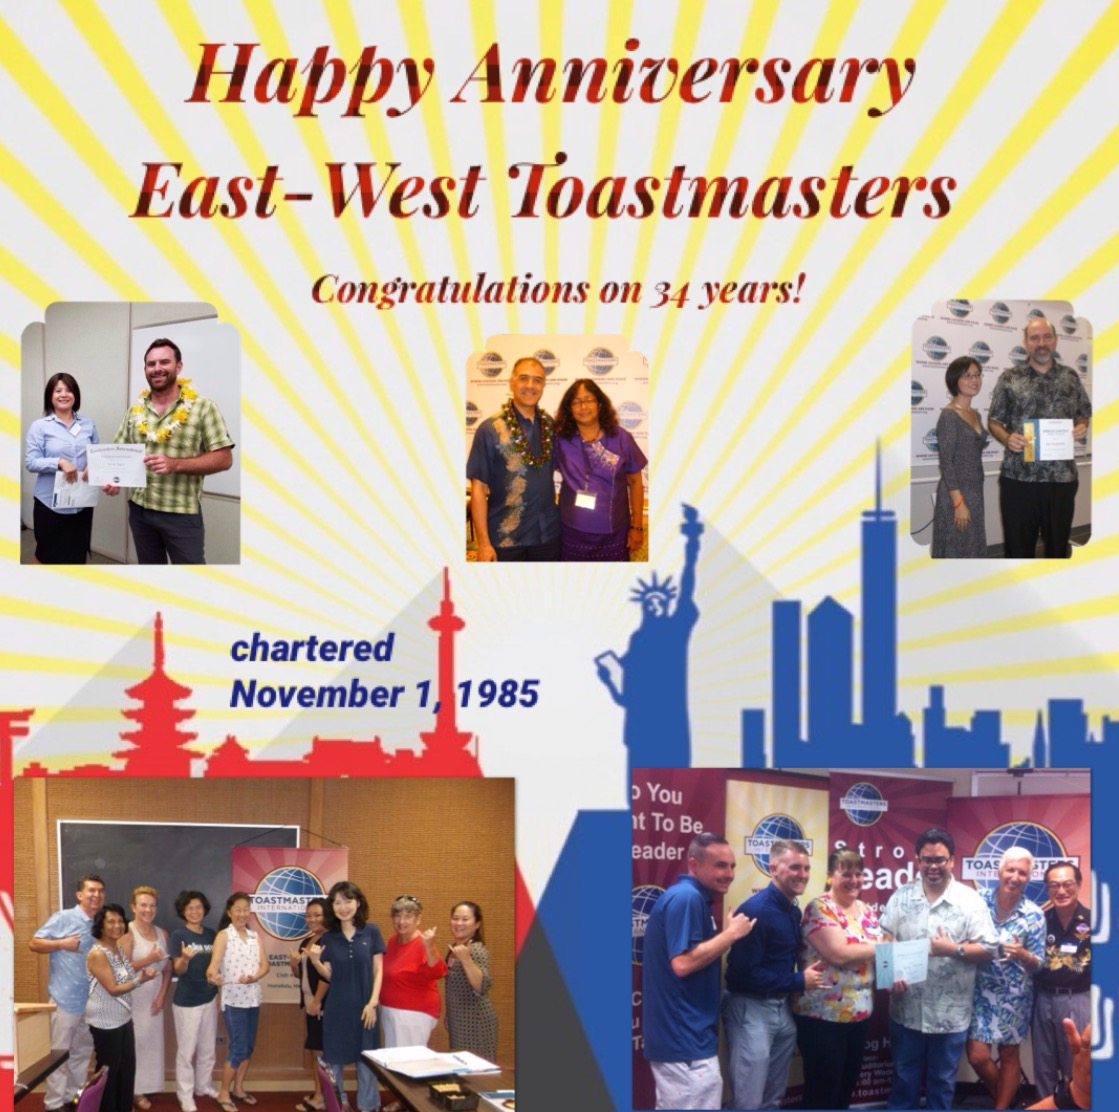 East-West Toastmasters Anniversary flyer